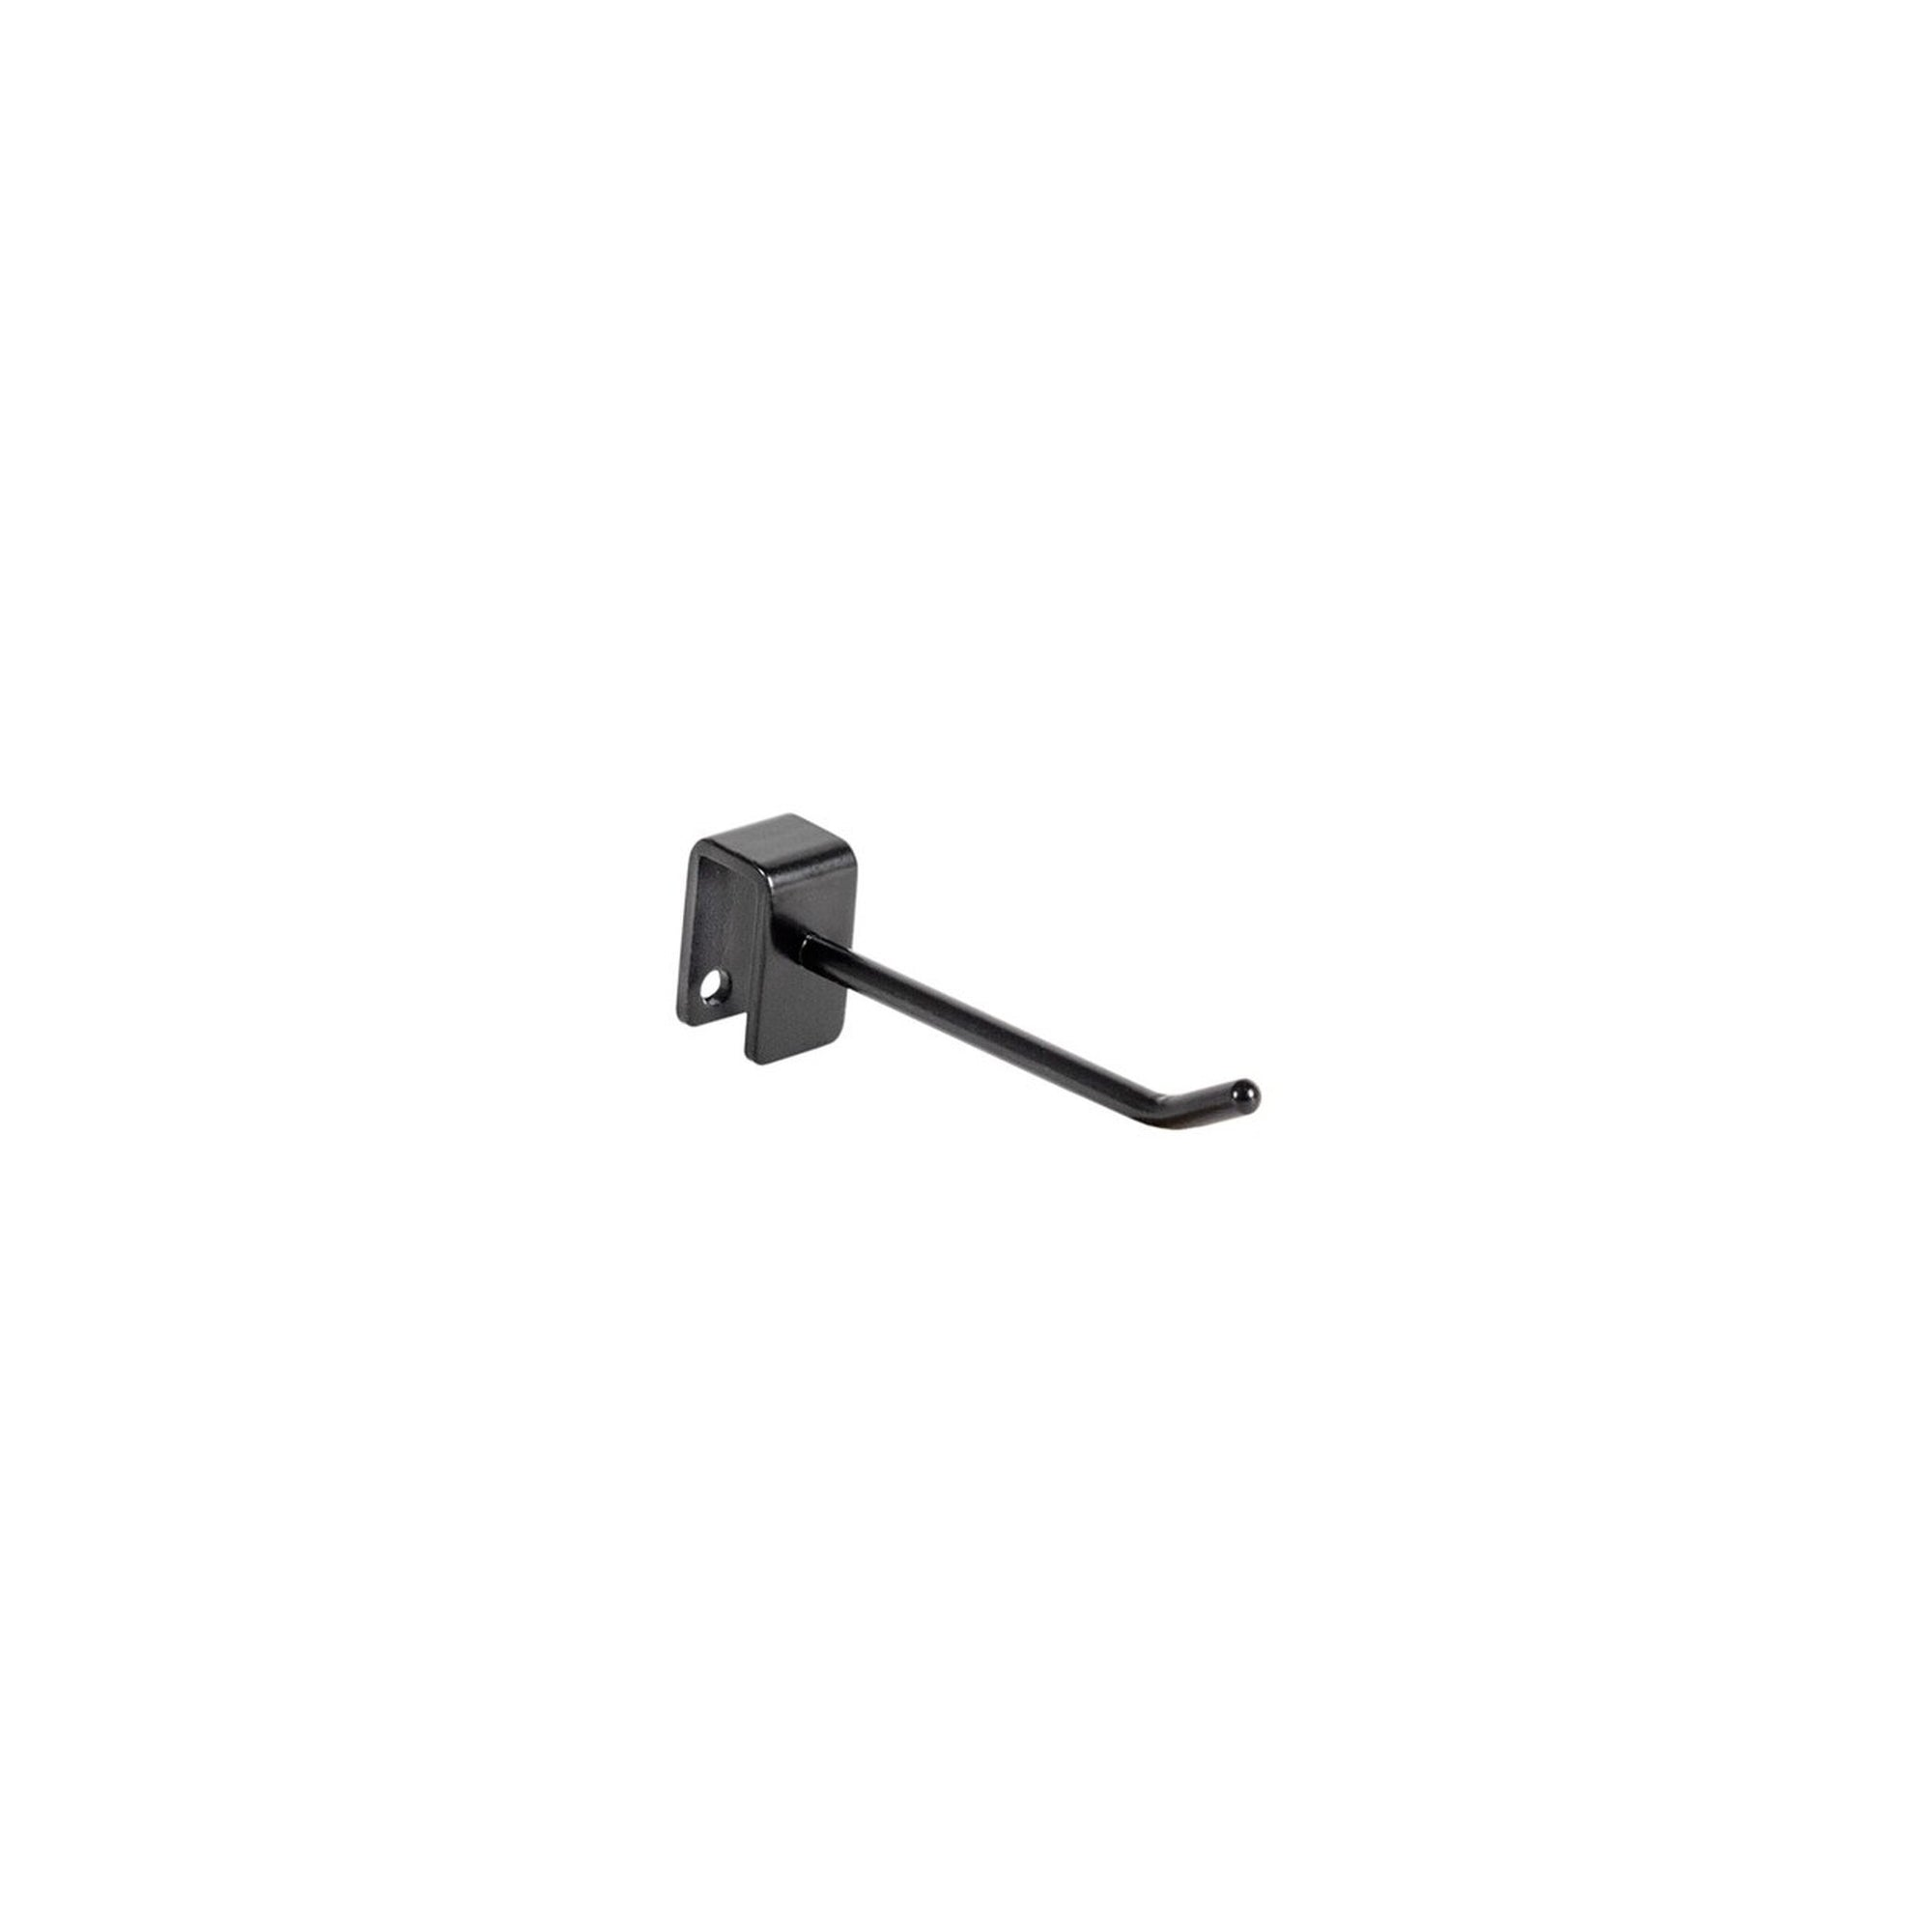 MAXe Backrail Hook - 100mm D x 6mm DIA wire (E4910)